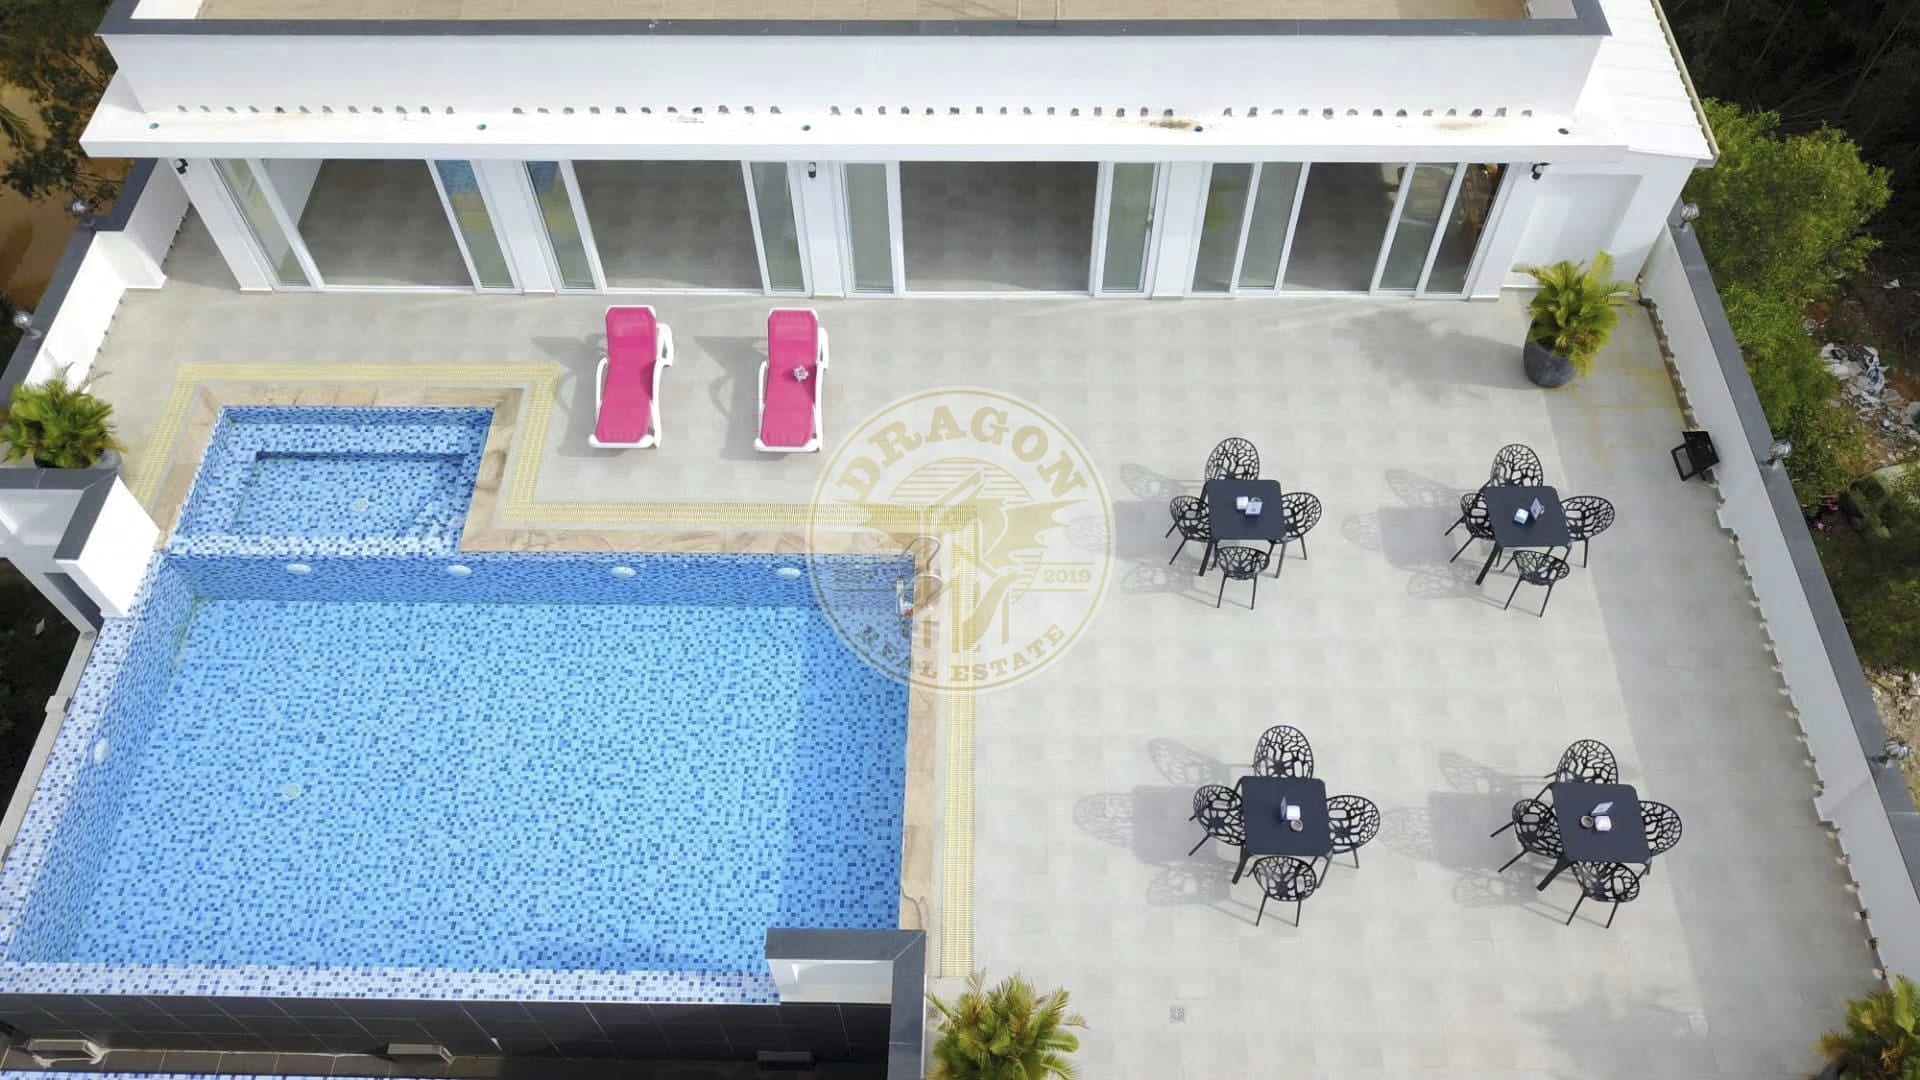 Luxury One Bedroom in Sihanoukville for Rent. Sihanoukville Cambodia Property Sale